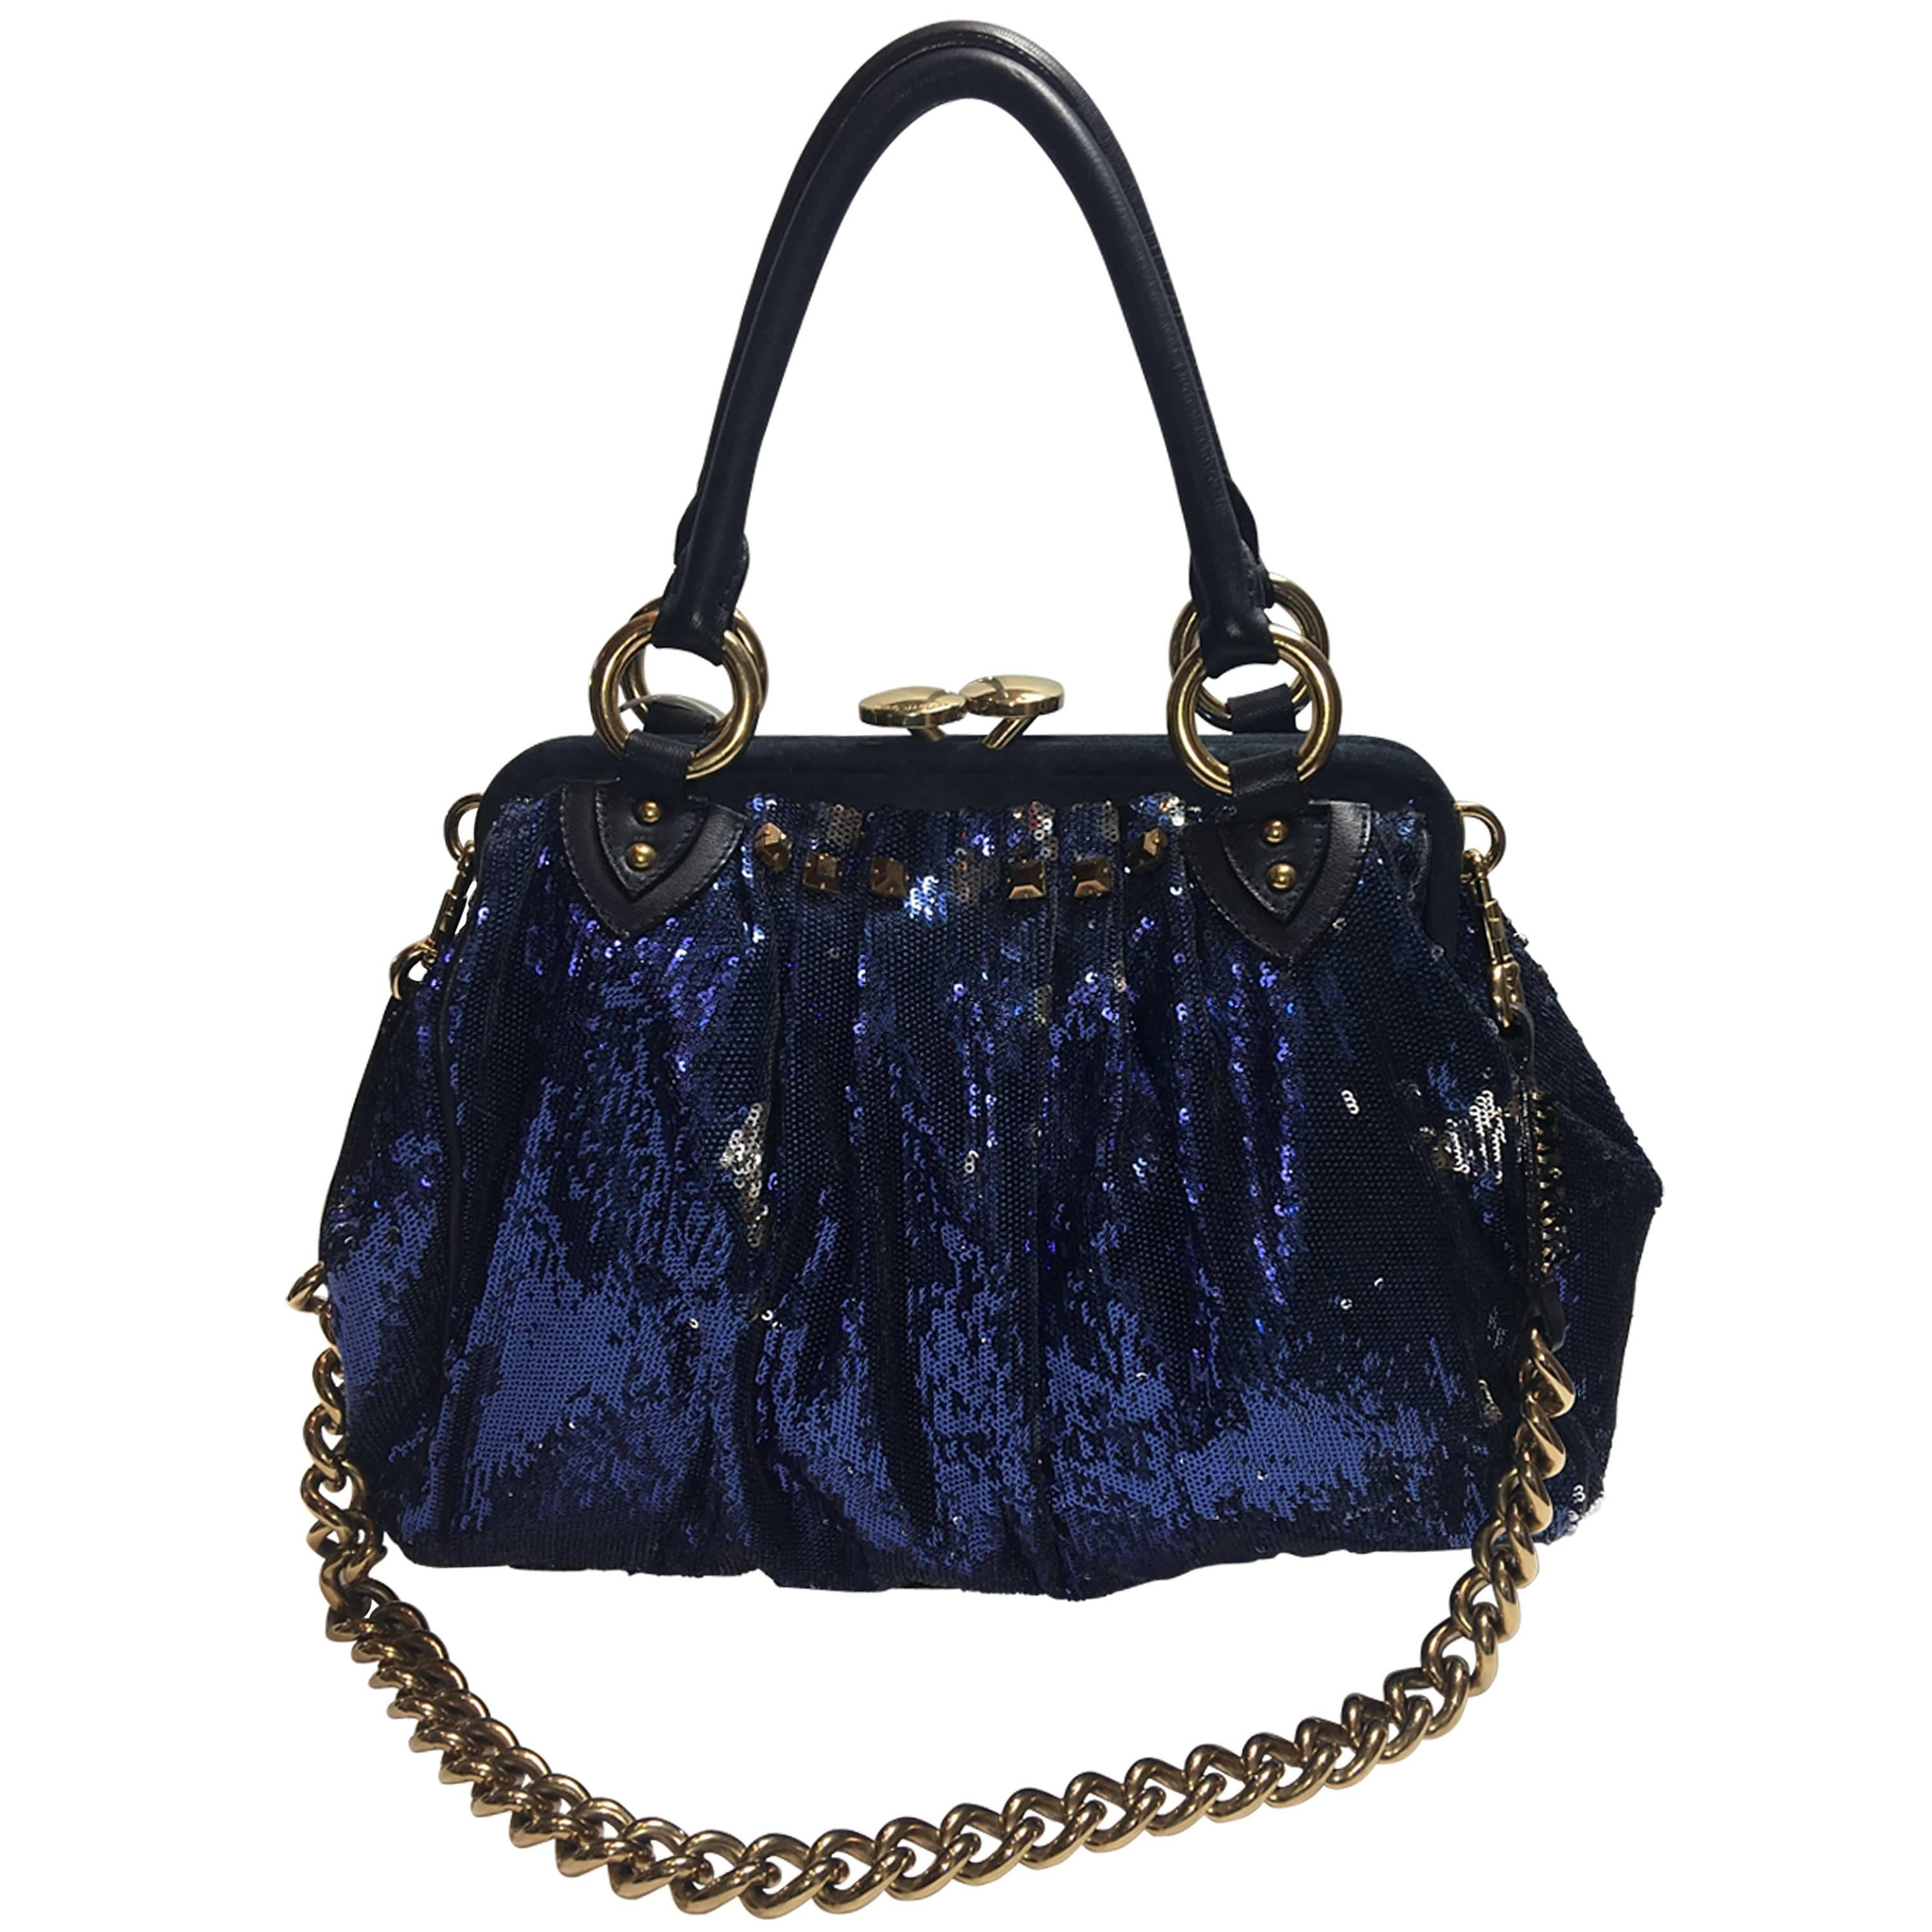 00c4cf9ad823 Marc Jacobs Black Woven Blake Handle Bag with Dust Bag For Sale at 1stdibs